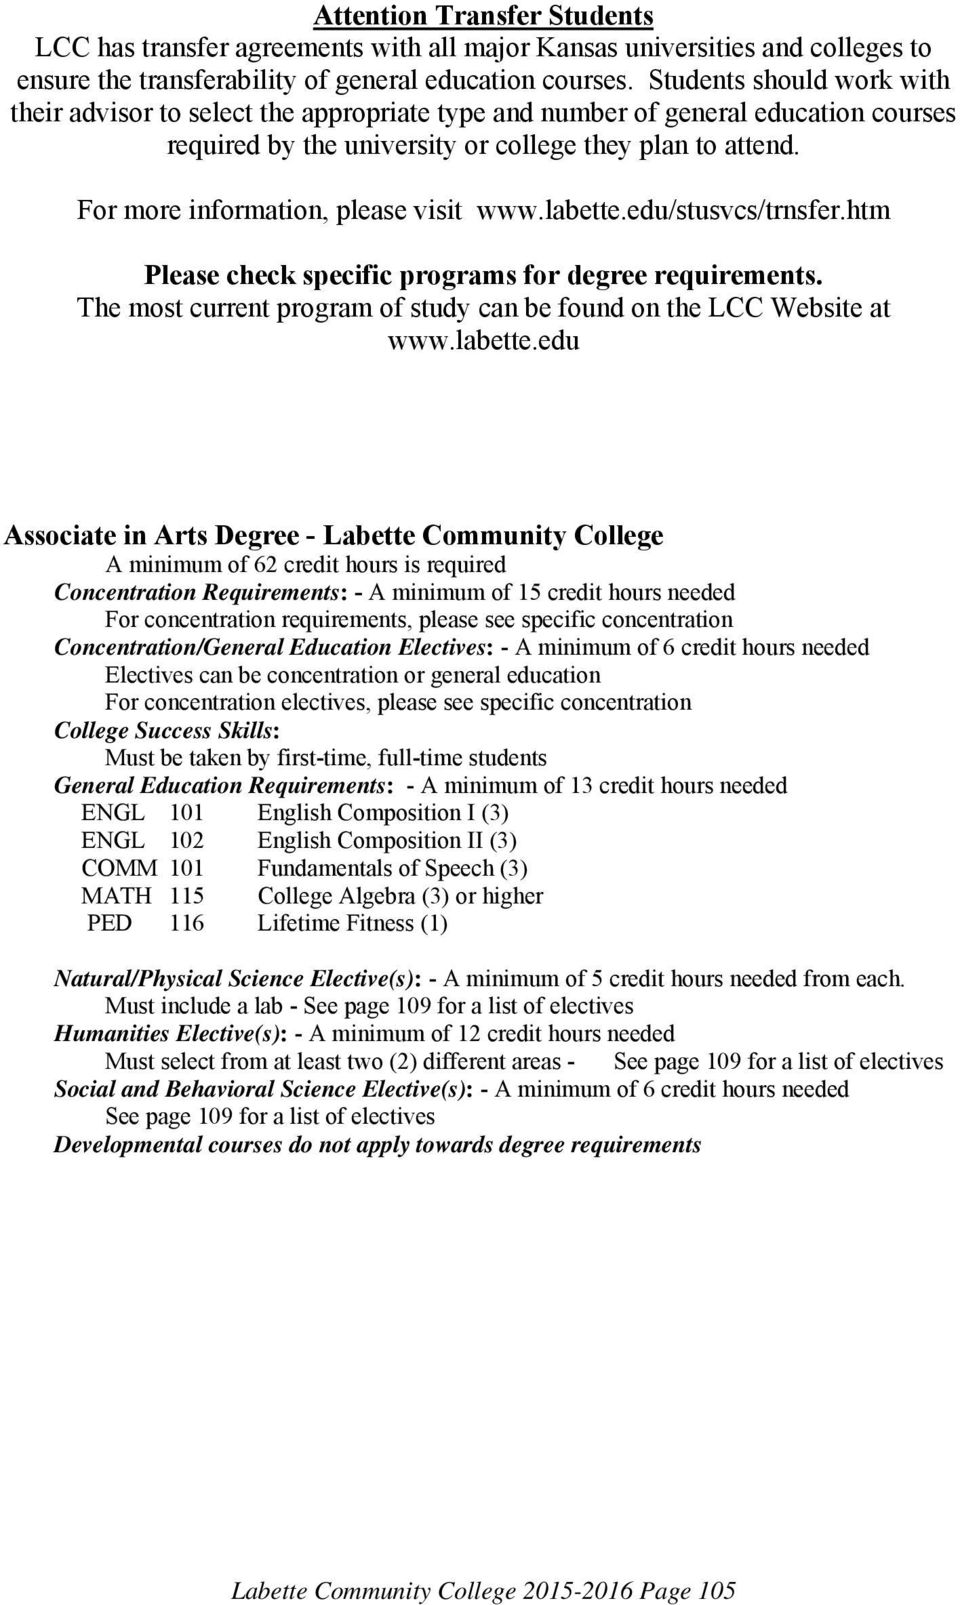 For more information, please visit www.labette.edu/stusvcs/trnsfer.htm Please check specific programs for degree requirements. The most current program of study can be found on the LCC Website at www.